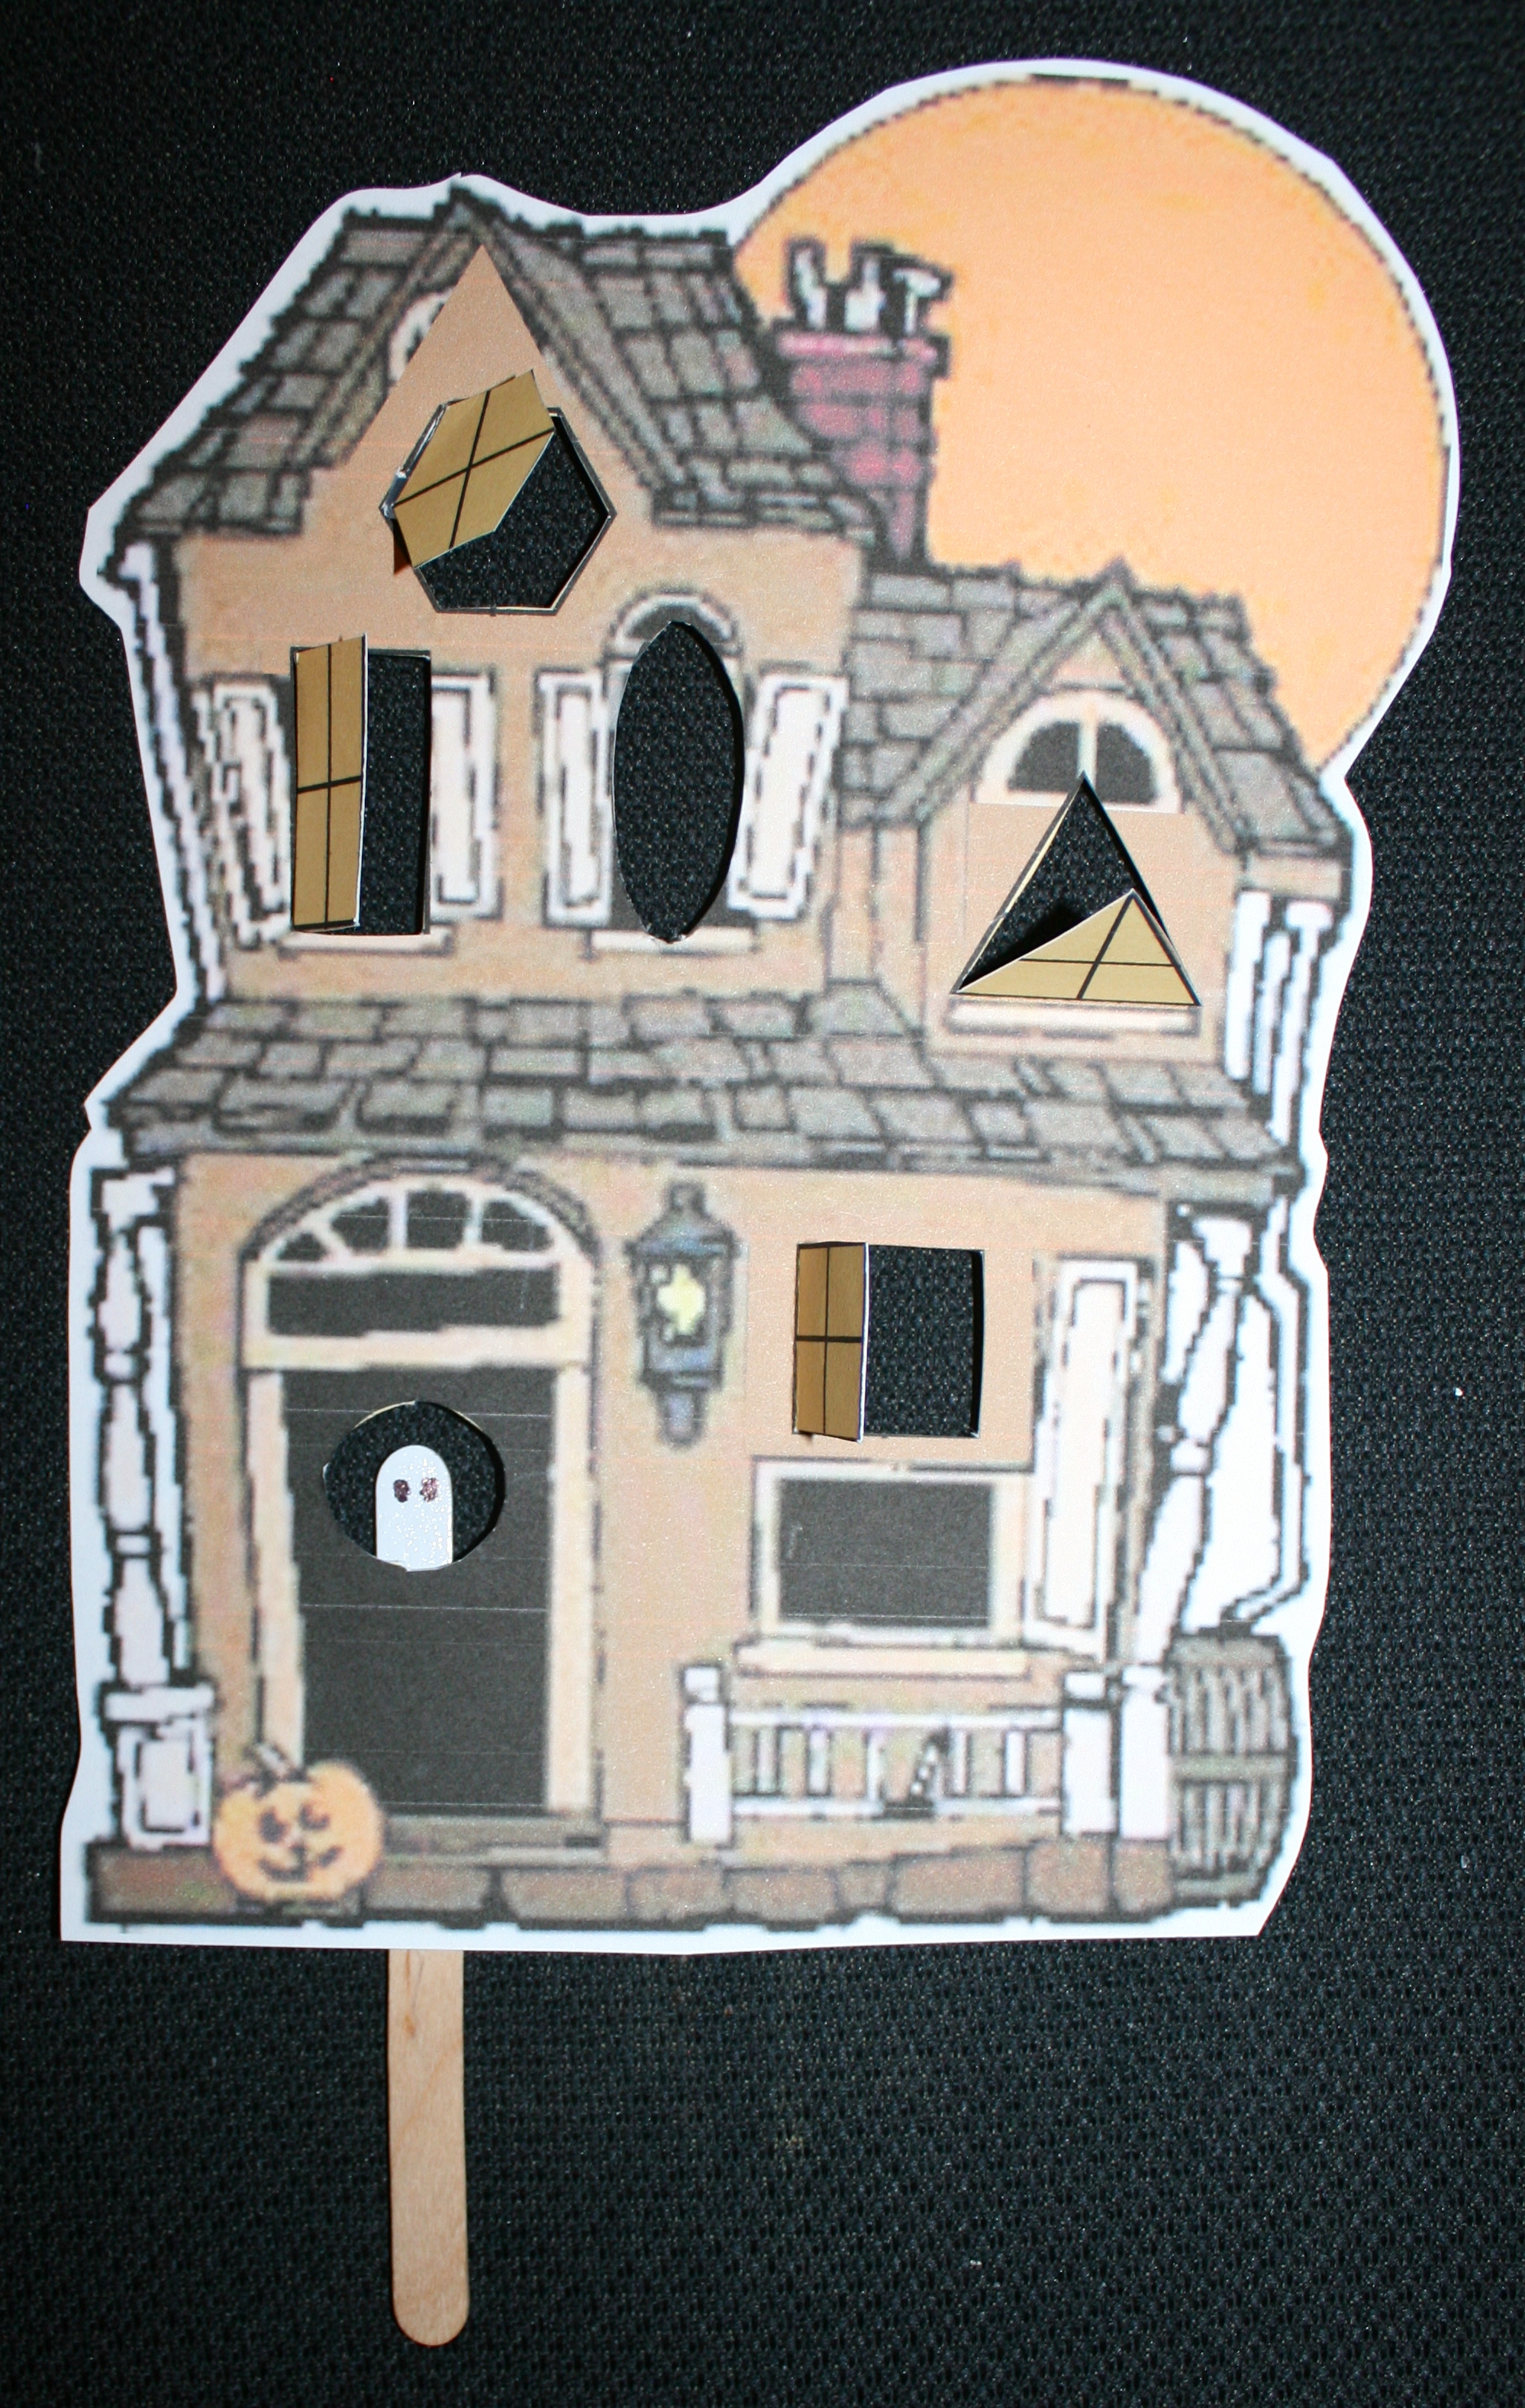 halloween games, halloween centers, halloween math, halloween activities, shape games, shape activities, shape lessons, shape centers, shape matching cards, matching shapes to shape words, ghost finger puppets, haunted house template, haunted house pattern, haunted house with shape windows,ghost activities